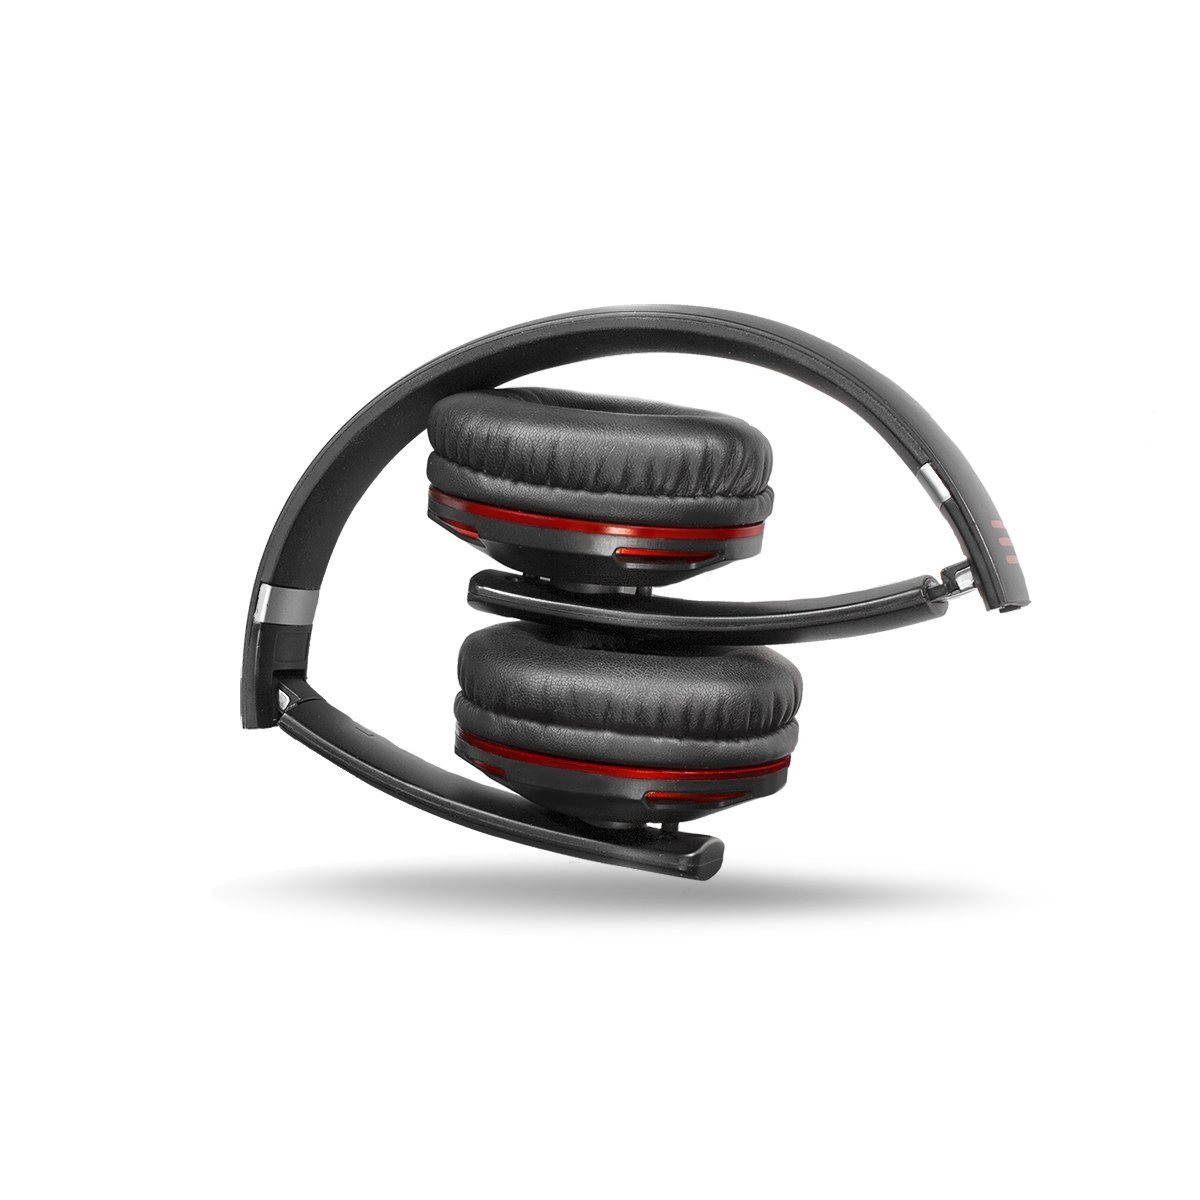 Psyc Wave X1 Bluetooth Headphone